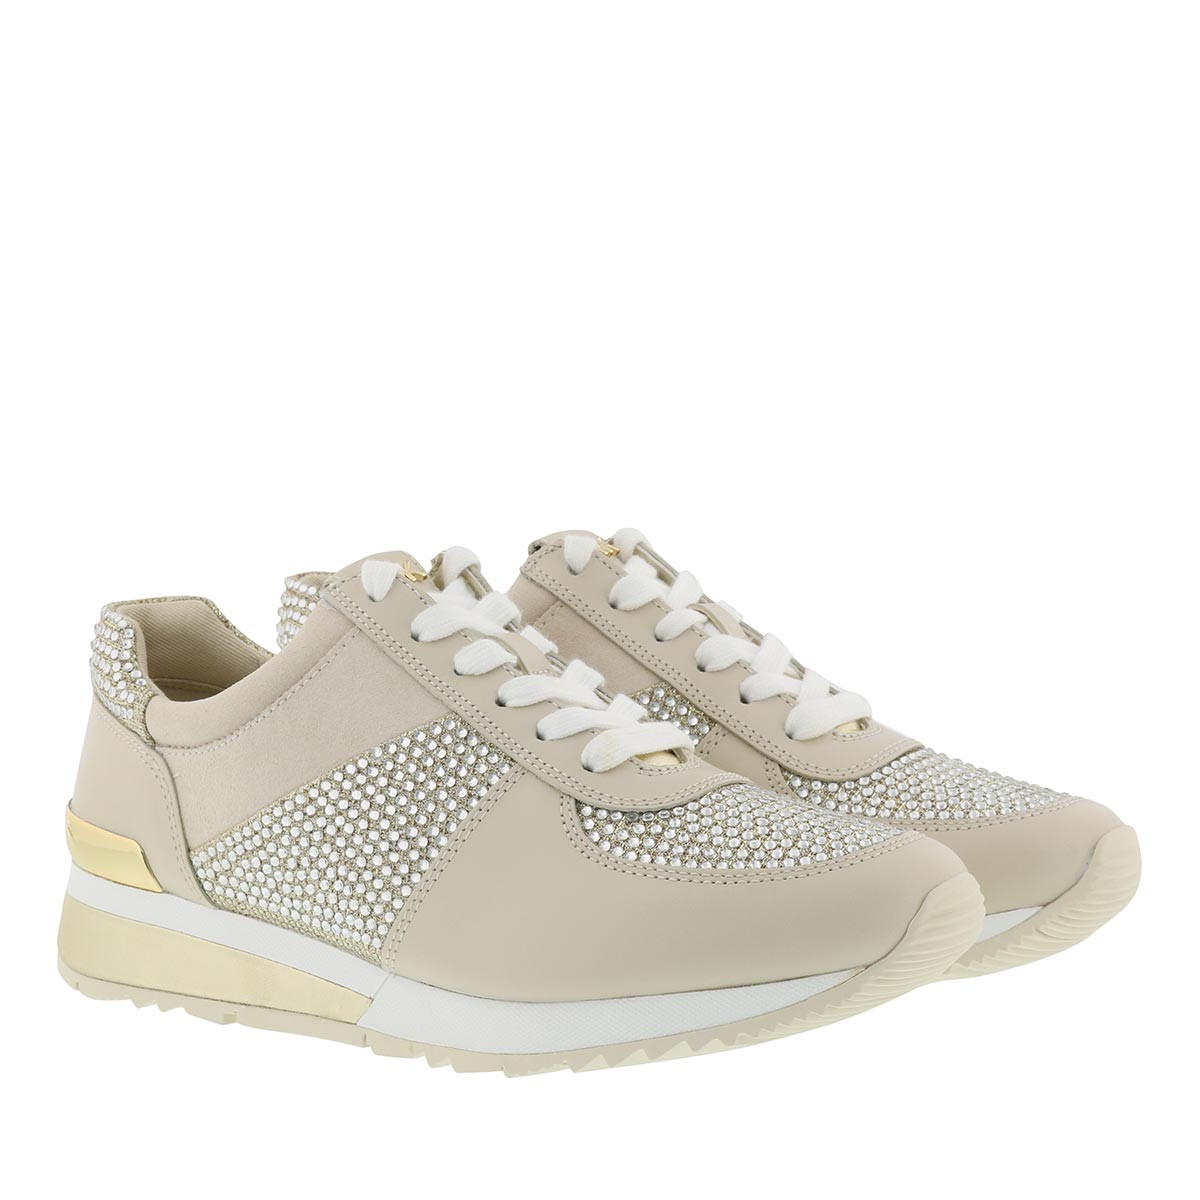 Michael Kors Sneakers - Allie Wrap Trainer Sneaker Pale Gold - in beige - für Damen